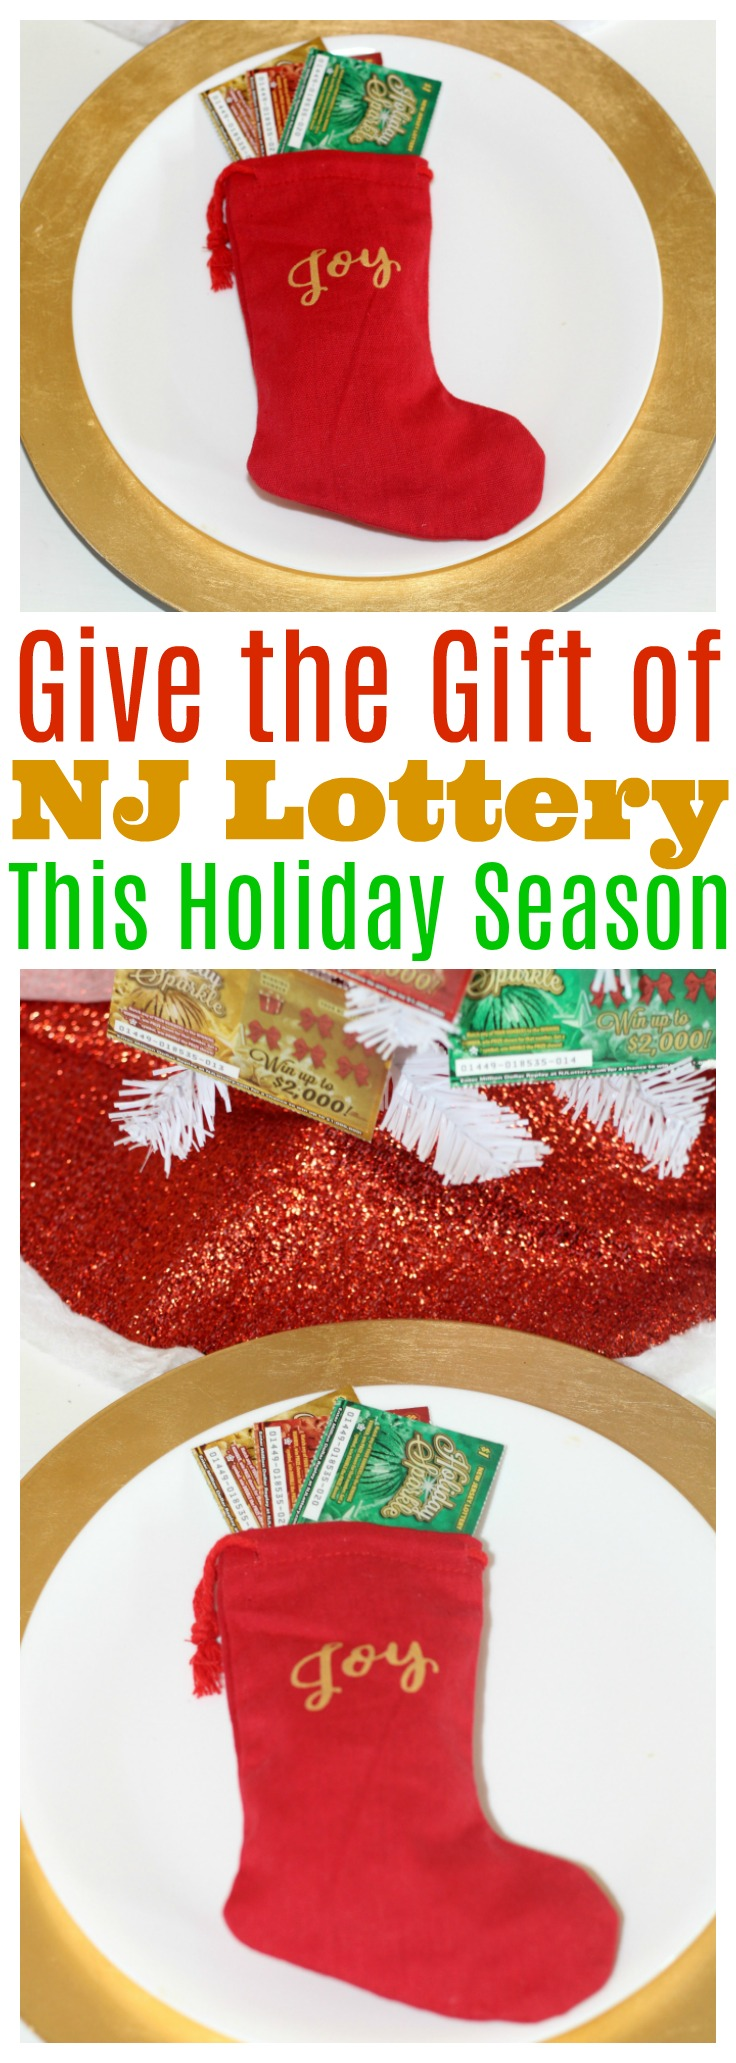 Give the Gift of the New Jersey Lottery This Holiday Season